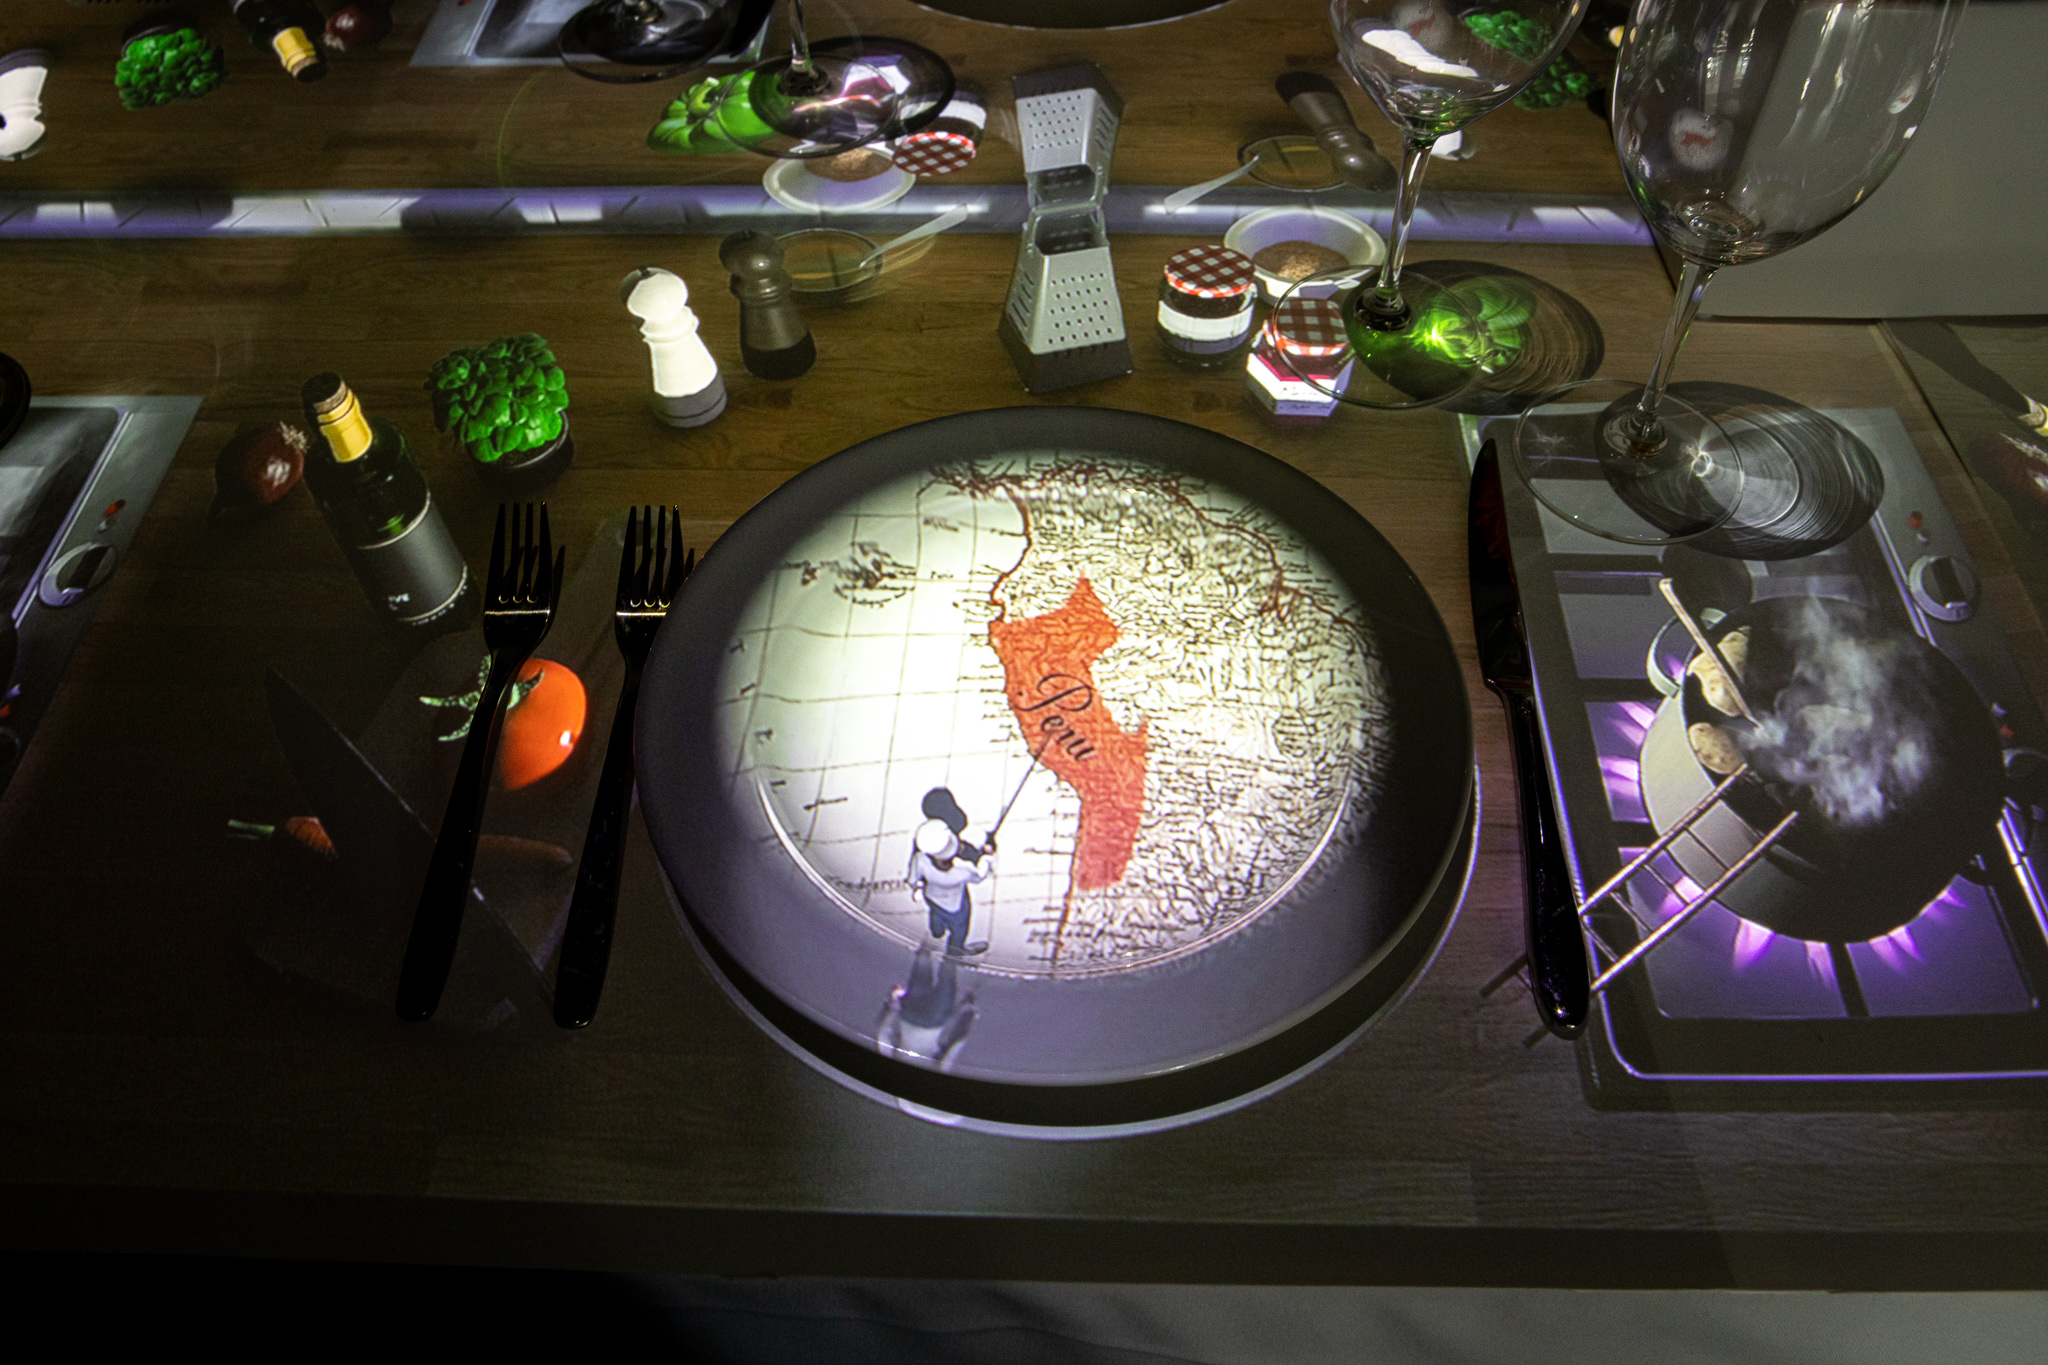 Mapping projection technology makes an image of a chef and a map of Peru on a place